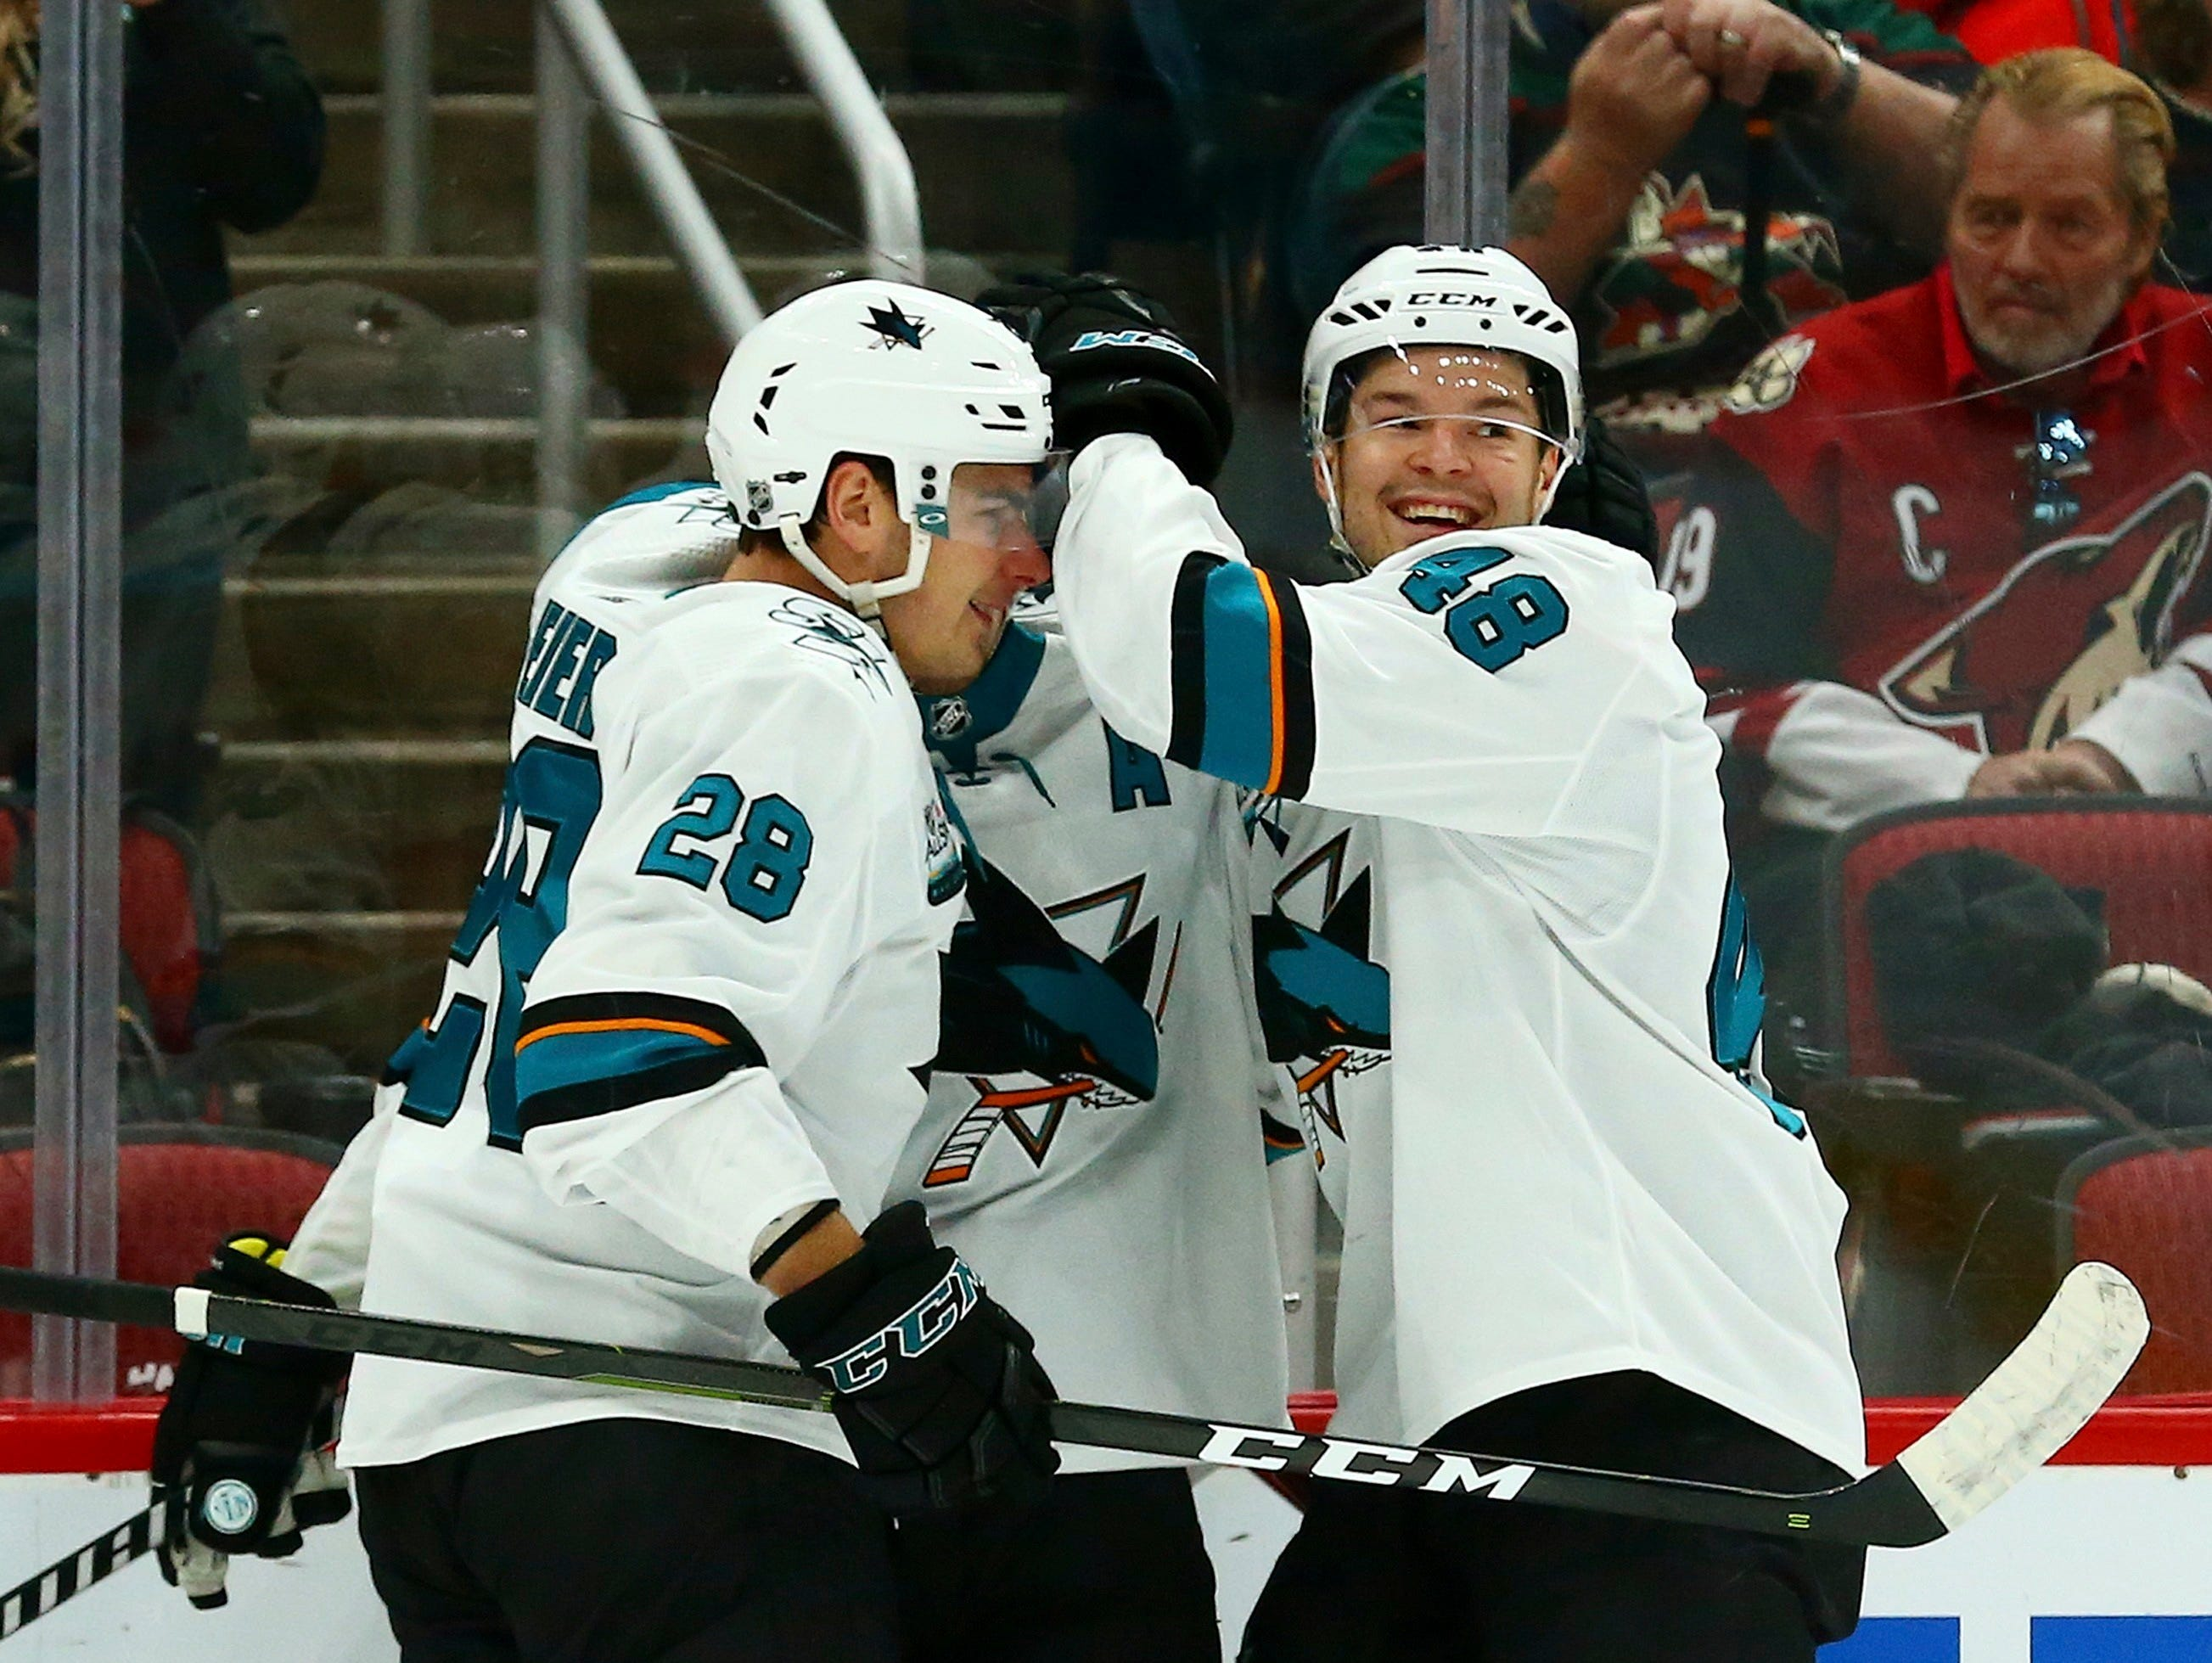 San Jose Sharks center Logan Couture, middle, celebrates his goal against the Arizona Coyotes with Sharks right wing Timo Meier (28) and center Tomas Hertl (48) during the first period of an NHL hockey game, Saturday, Dec. 8, 2018, in Phoenix. (AP Photo/Ross D. Franklin)